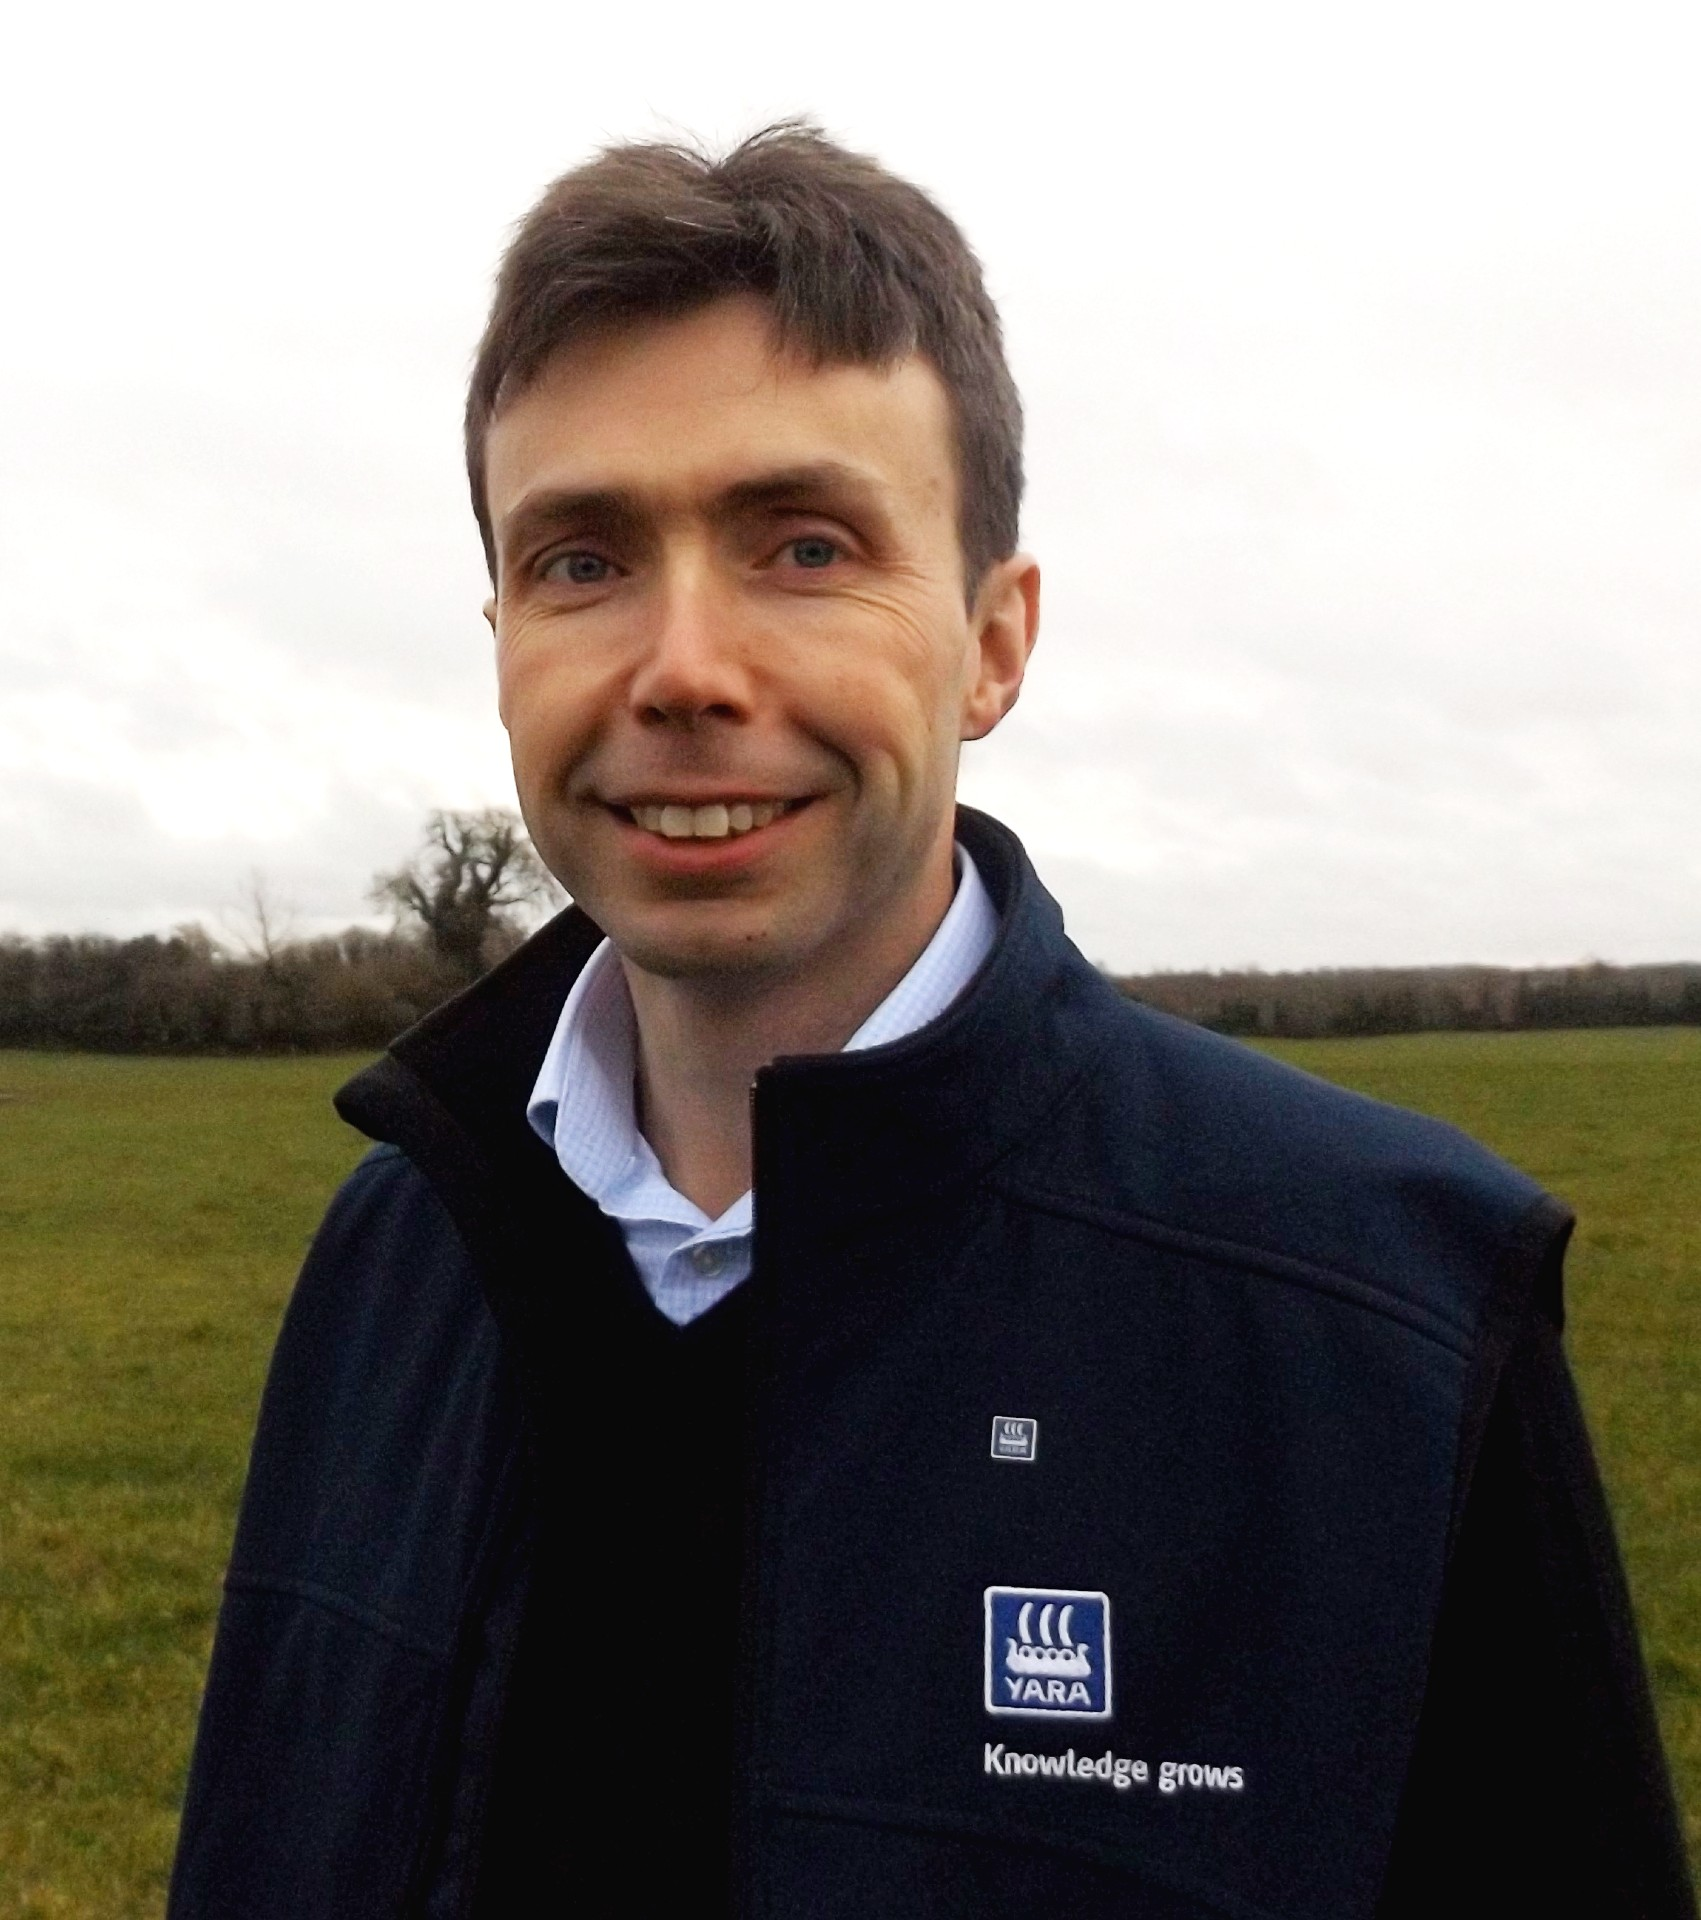 Philip Cosgrave, Country Grassland Agronomist at Yara,